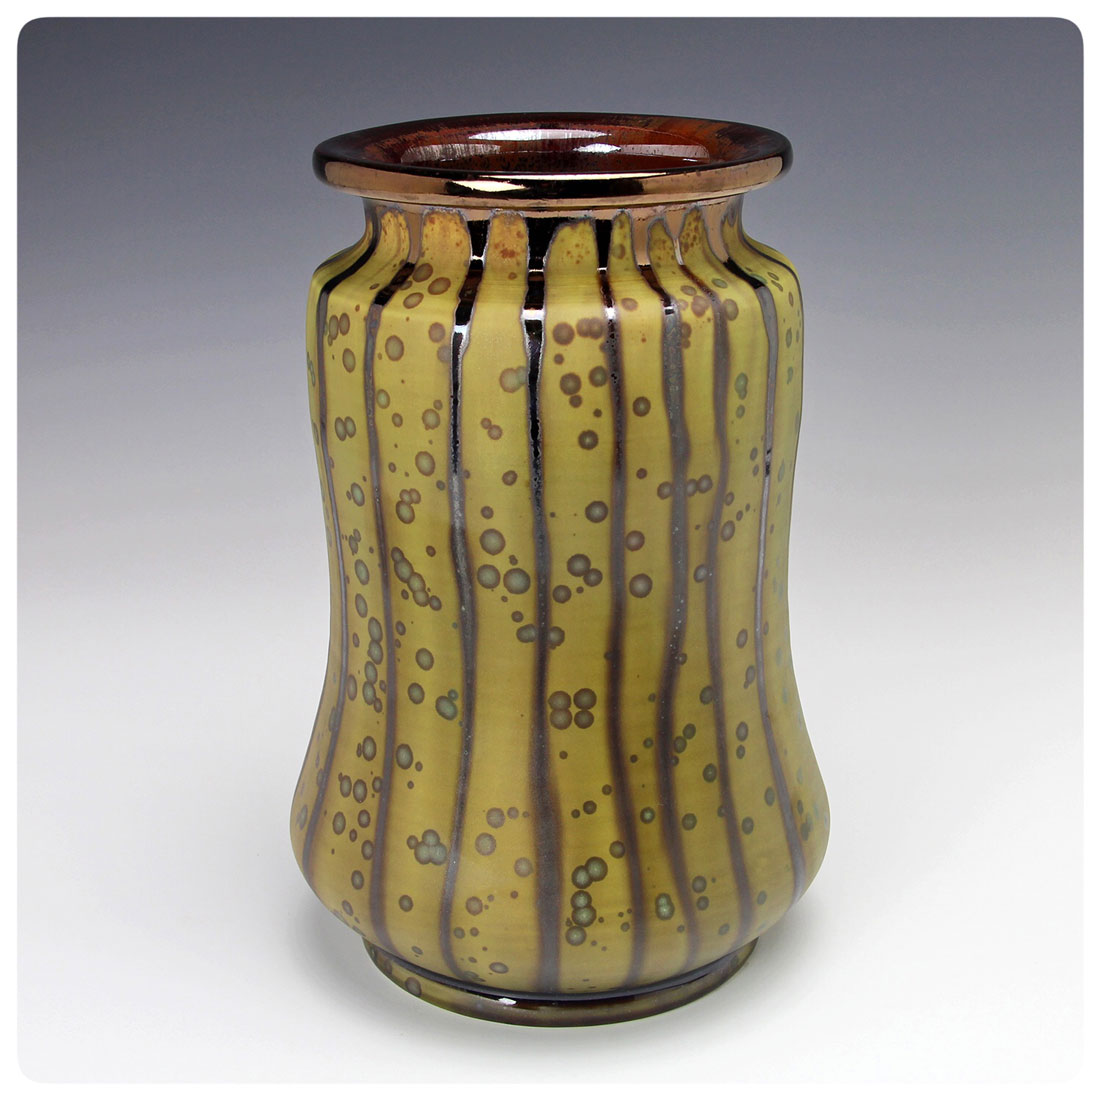 Matte Crystalline Art Pottery Vase, Bruce Gholson, Bulldog Pottery, Seagrove, North Carolina